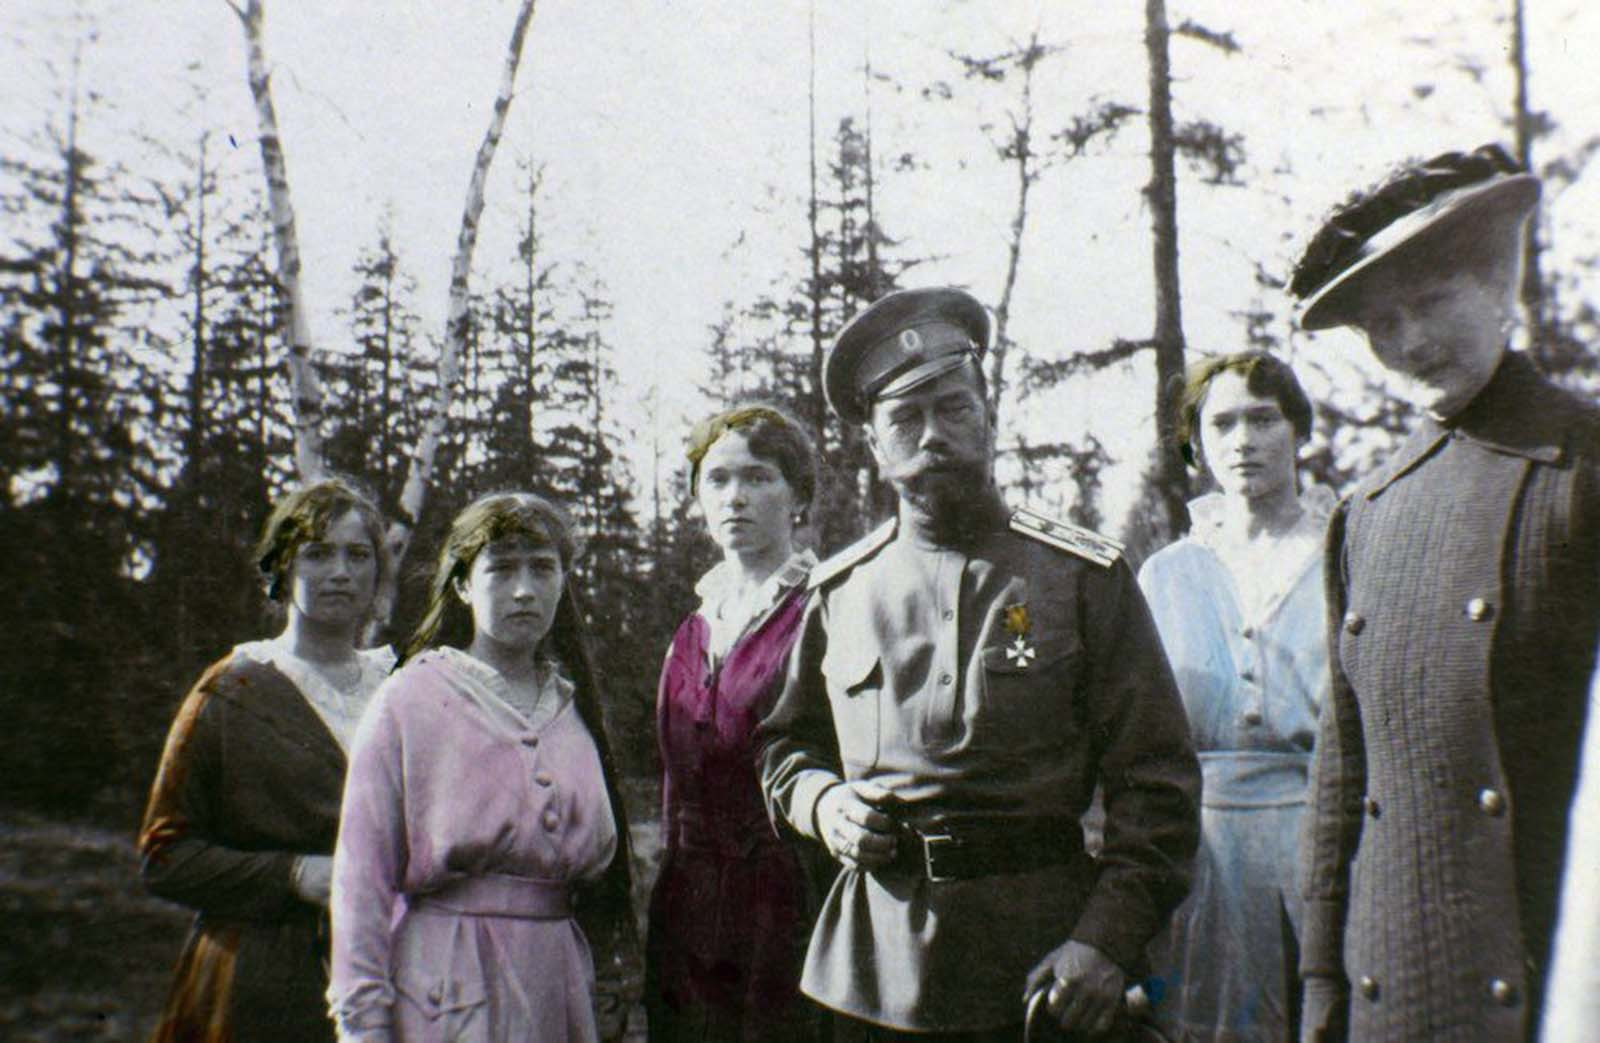 Tsar Nicholas II with daughters (left to right) Maria, Anastasia, Olga and Tatiana Romanov.